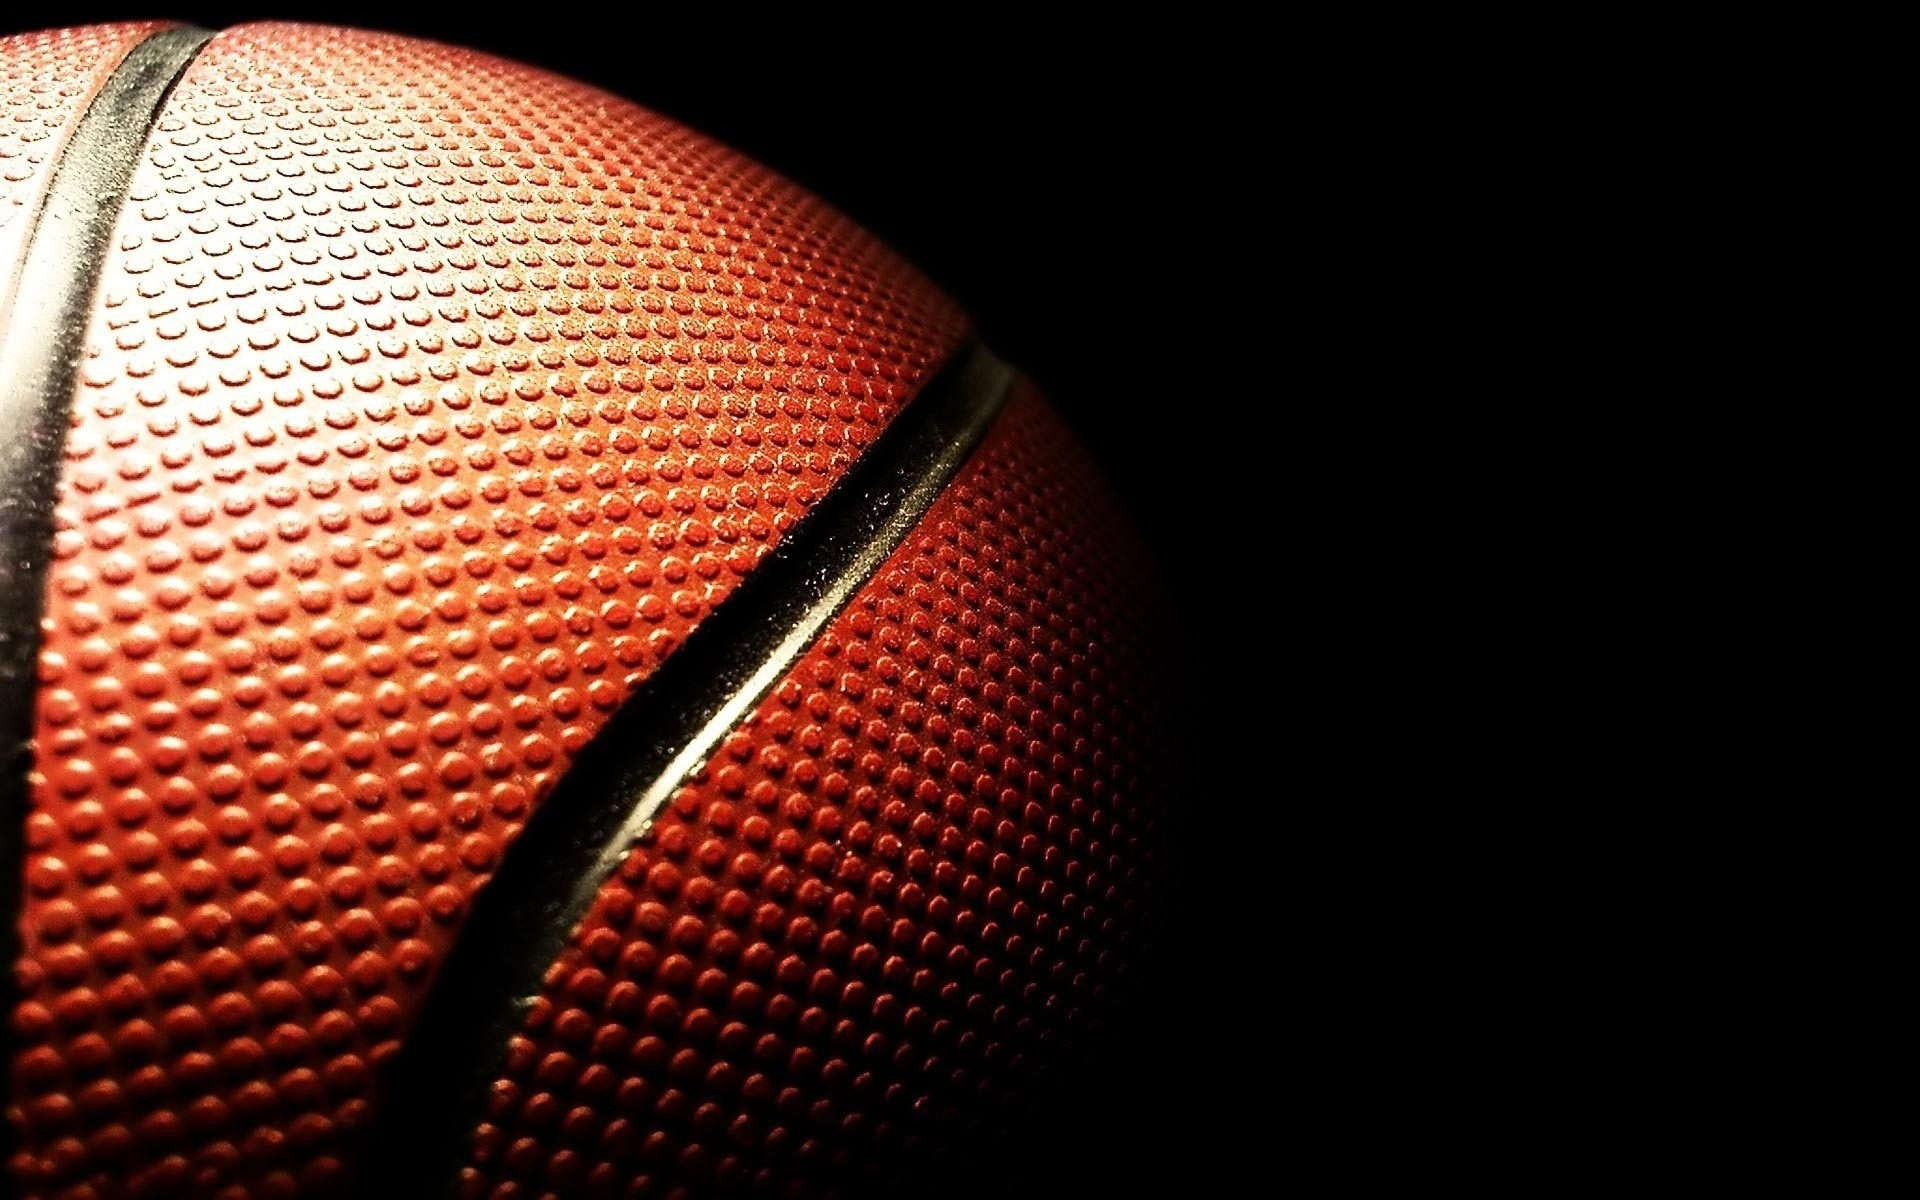 1920x1200 78 best ideas about Basketball Wallpaper Hd on Pinterest